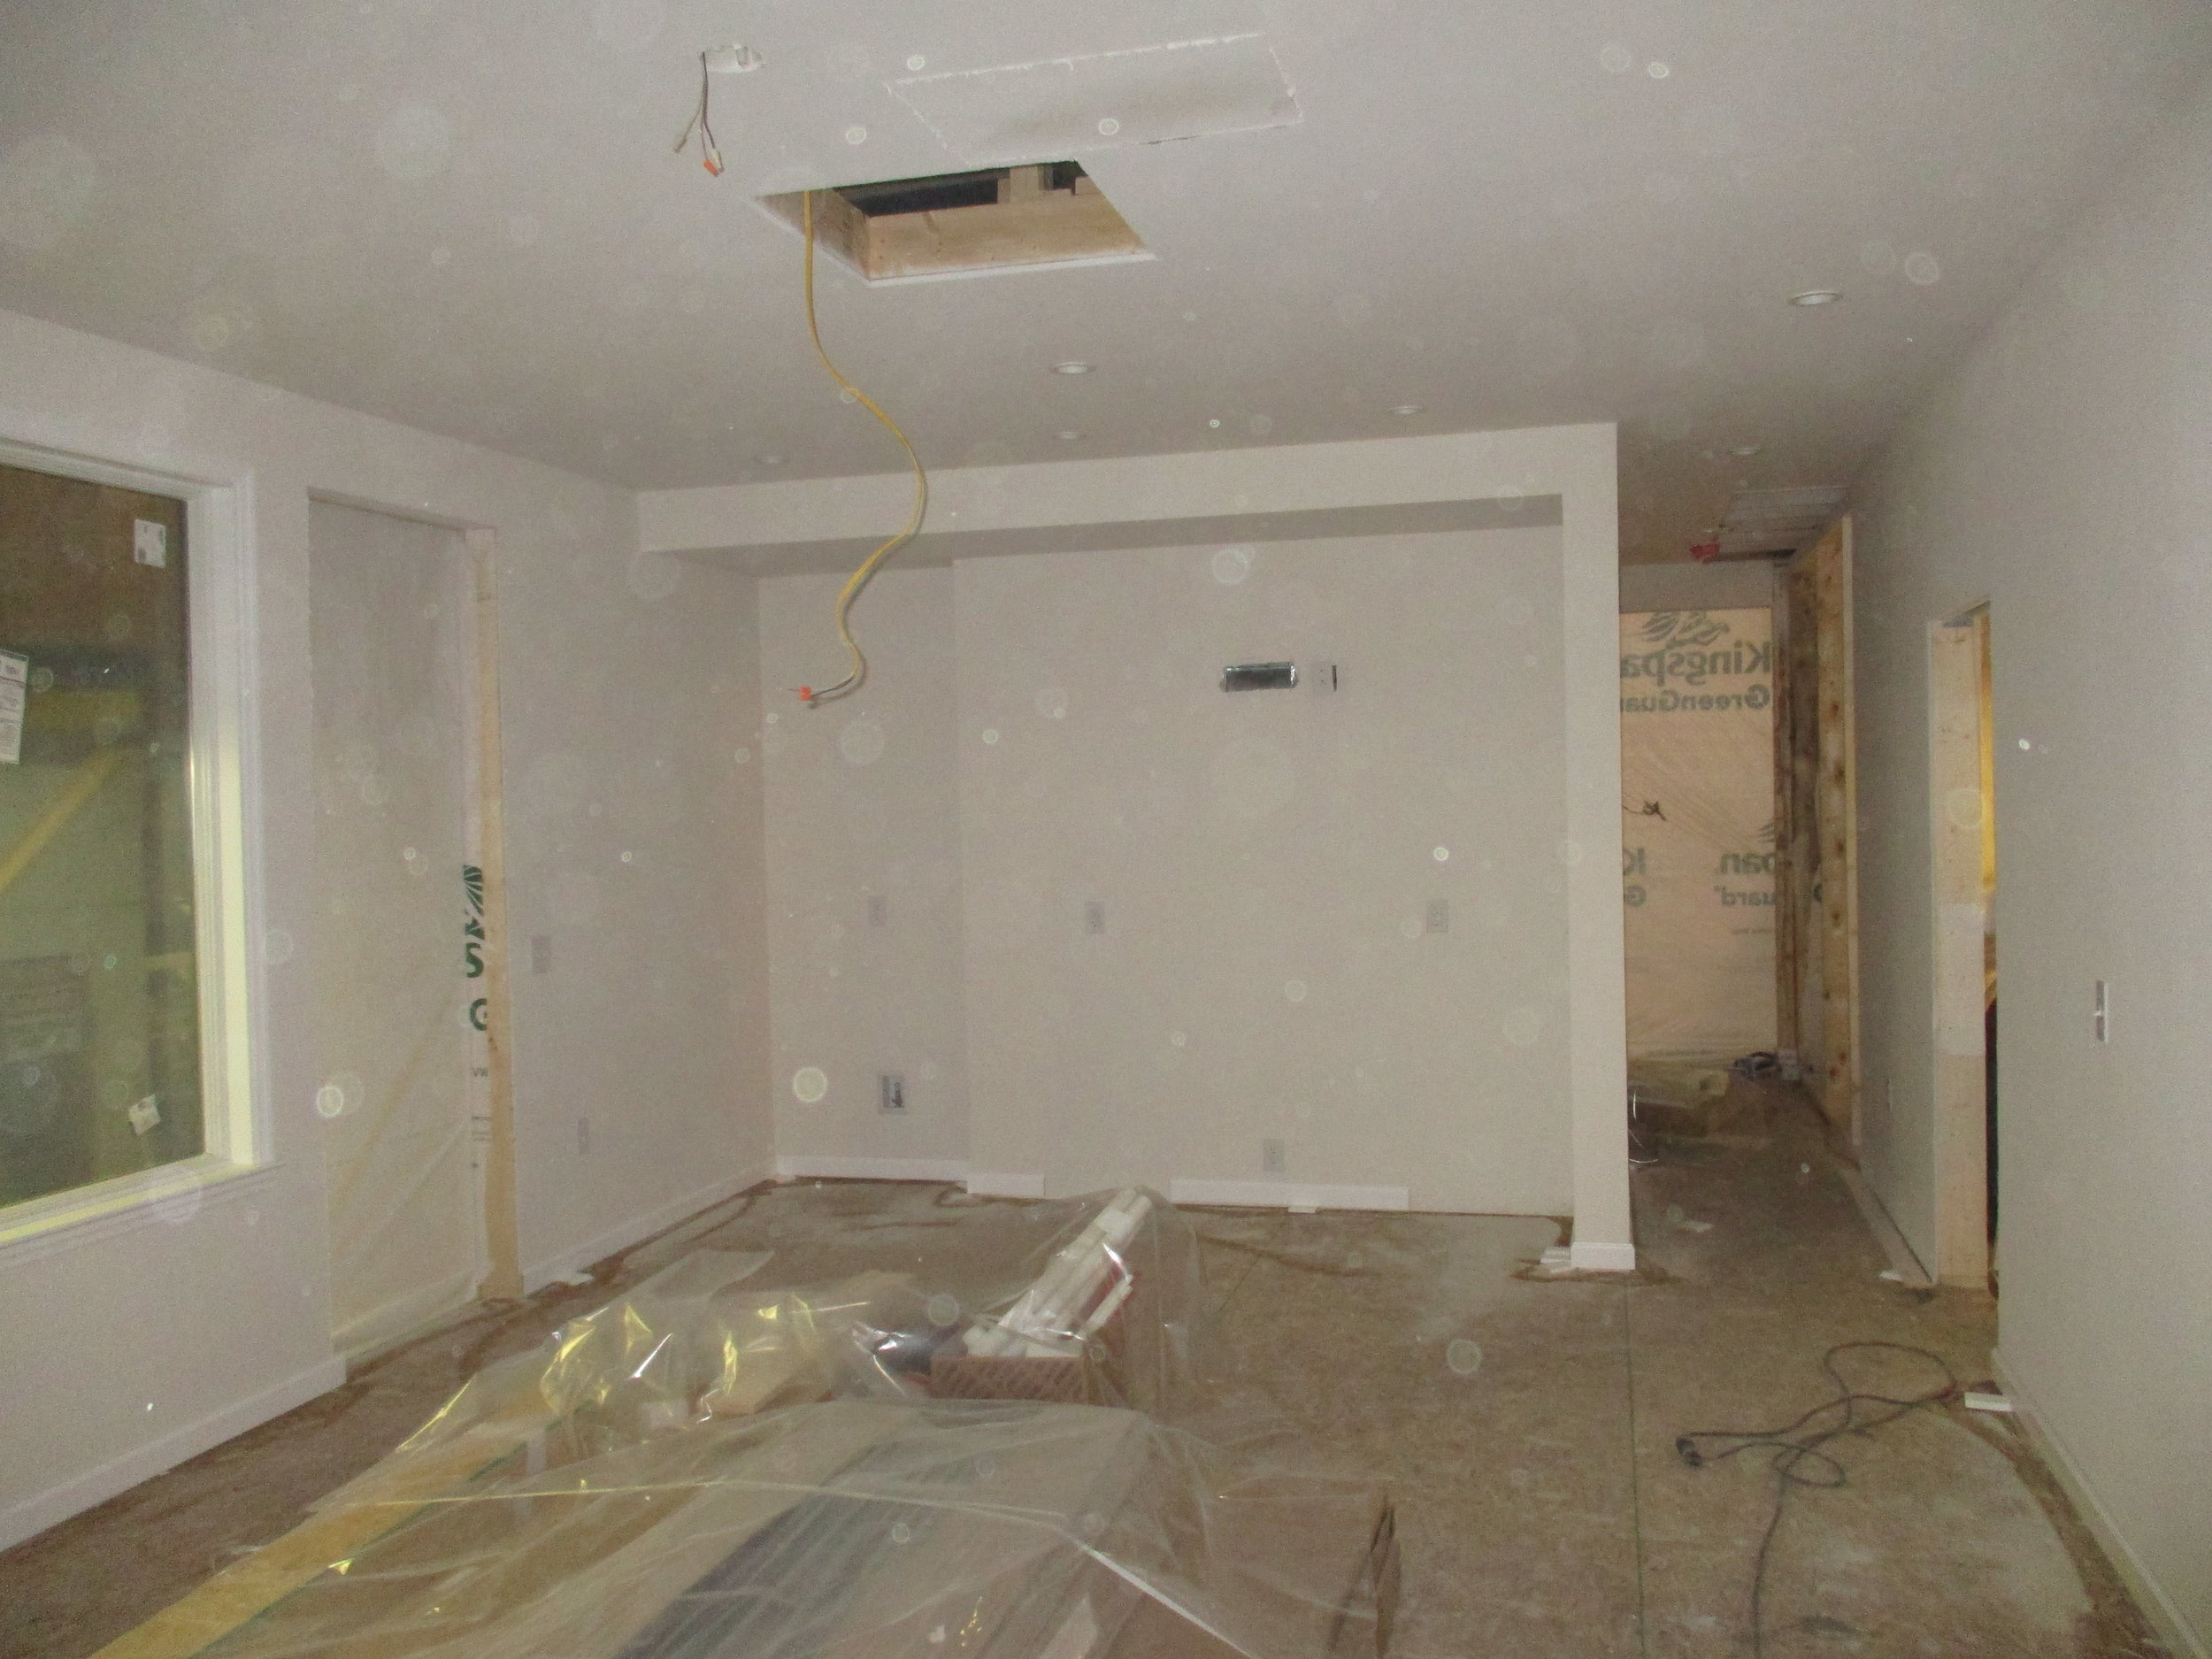 Interior of the first floor looking towards what will be the kitchen.